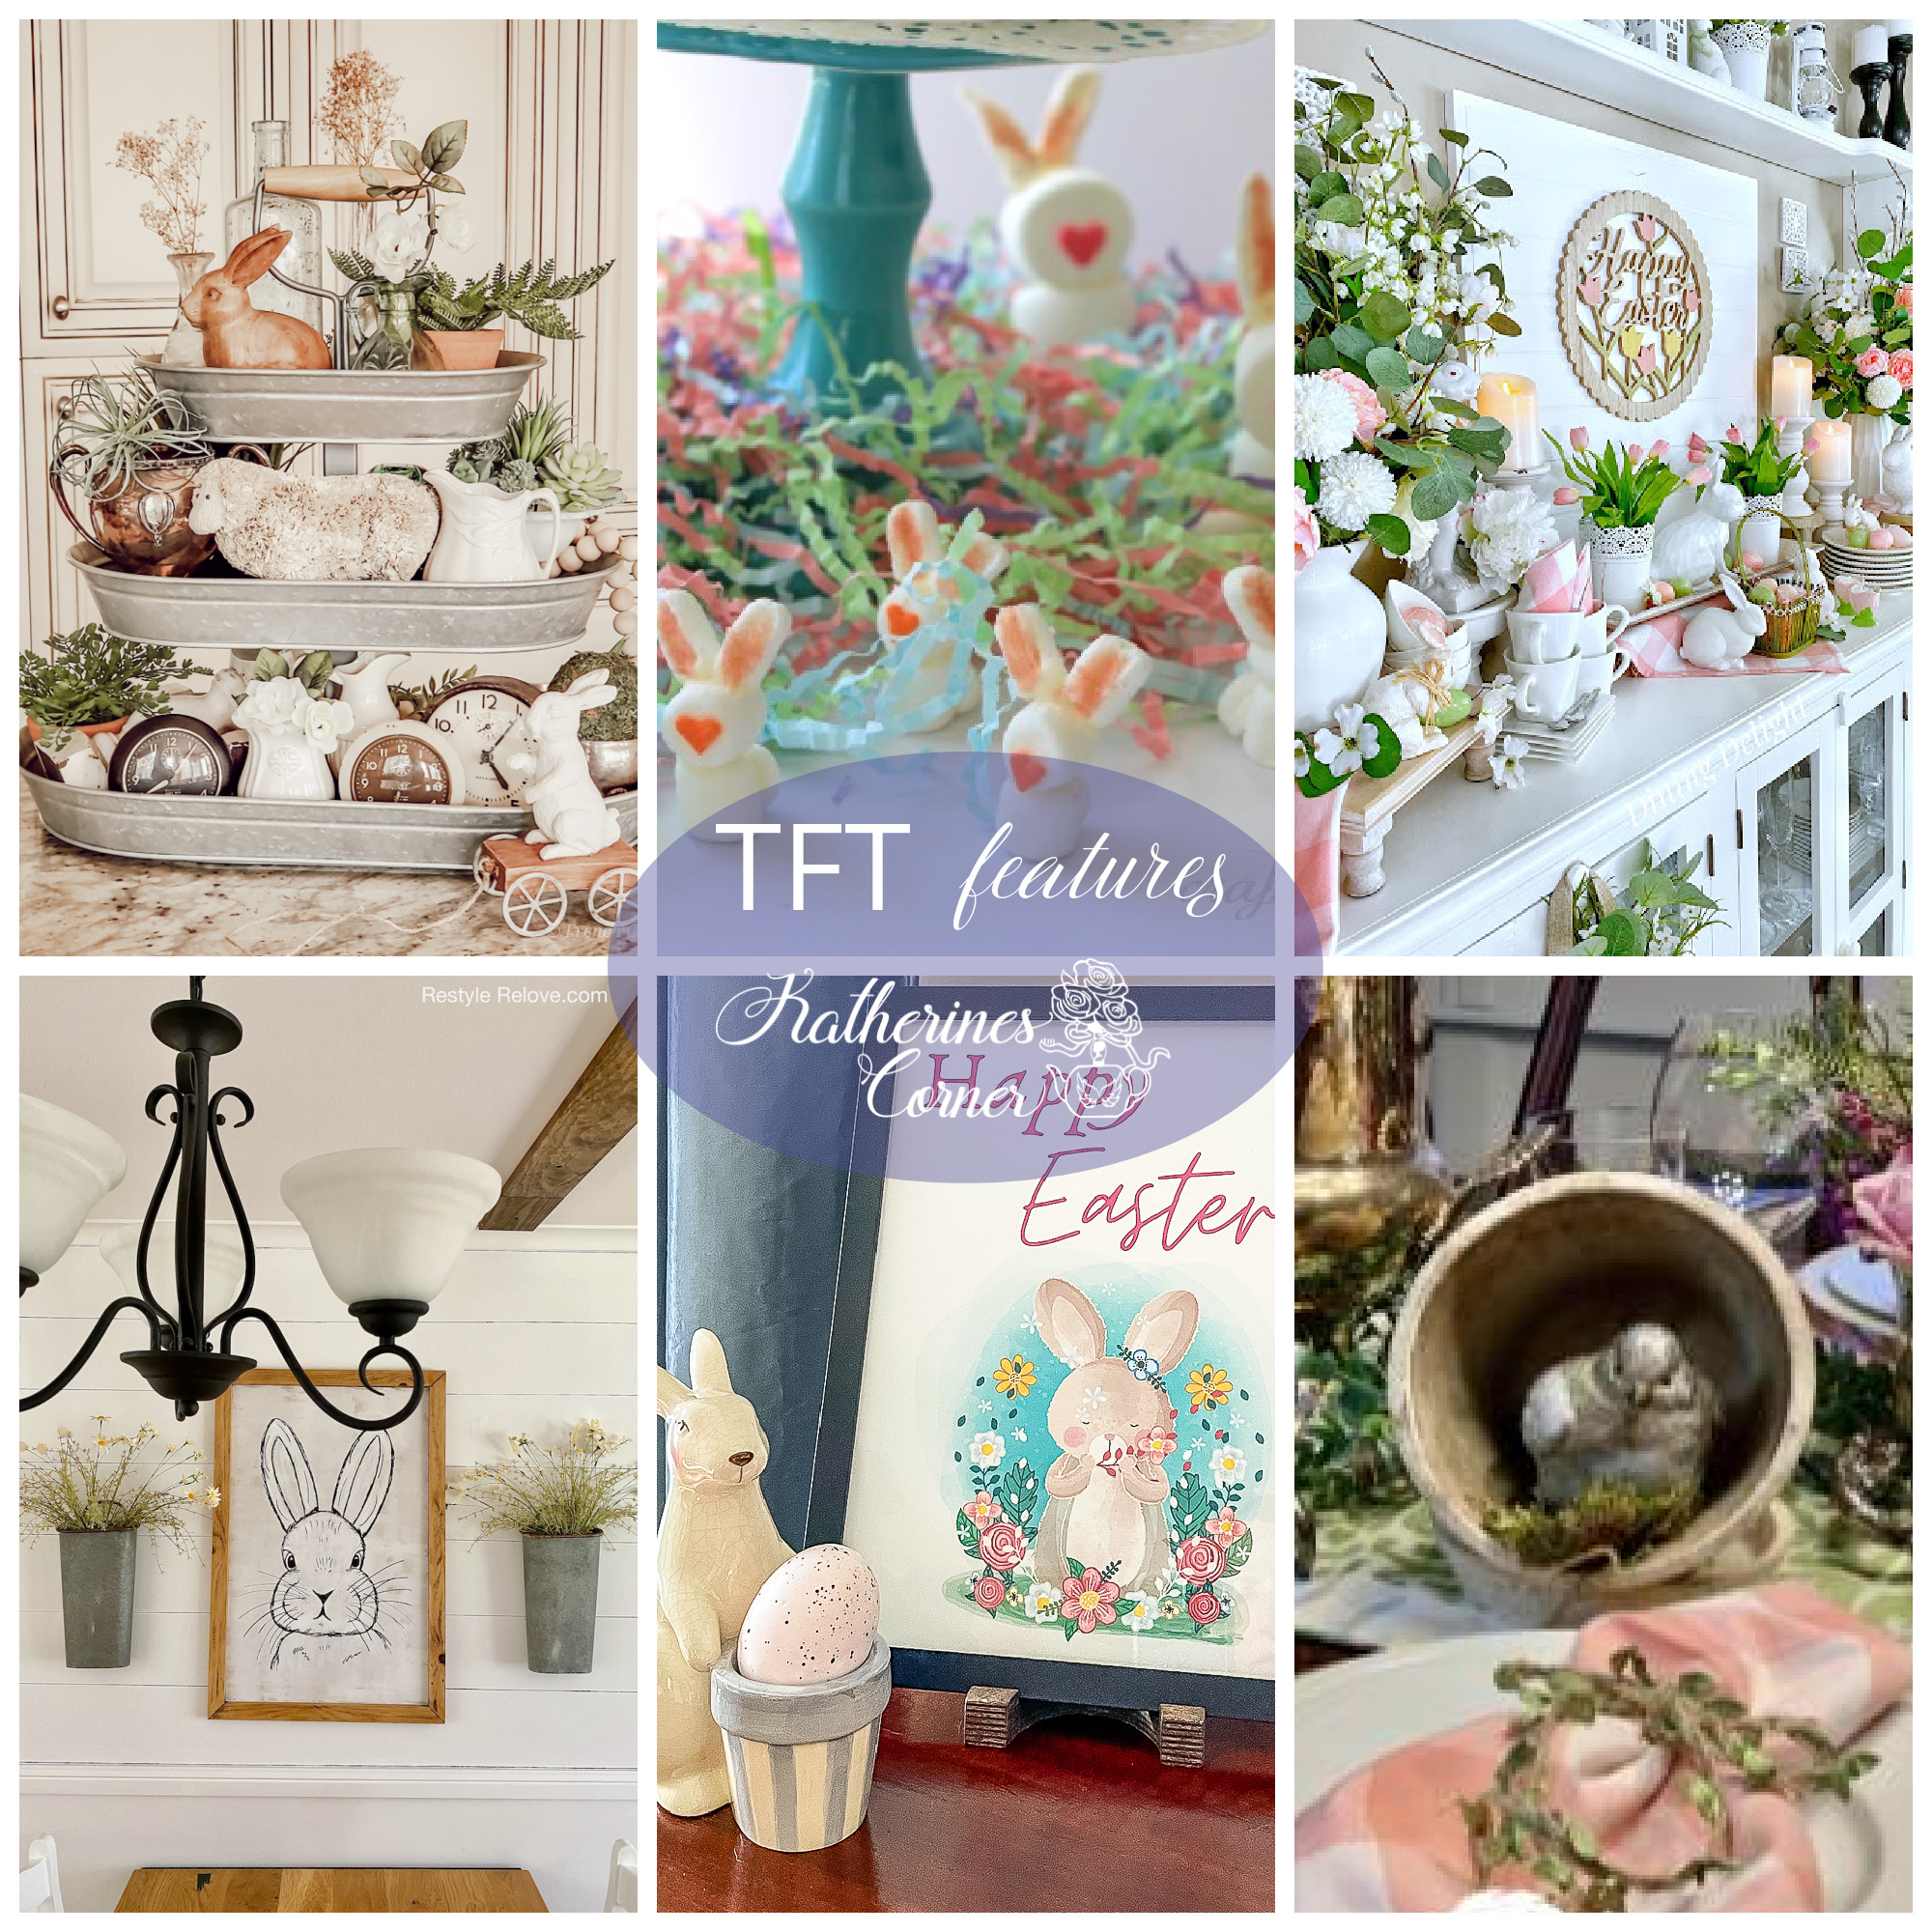 Easter and TFT Blog Hop